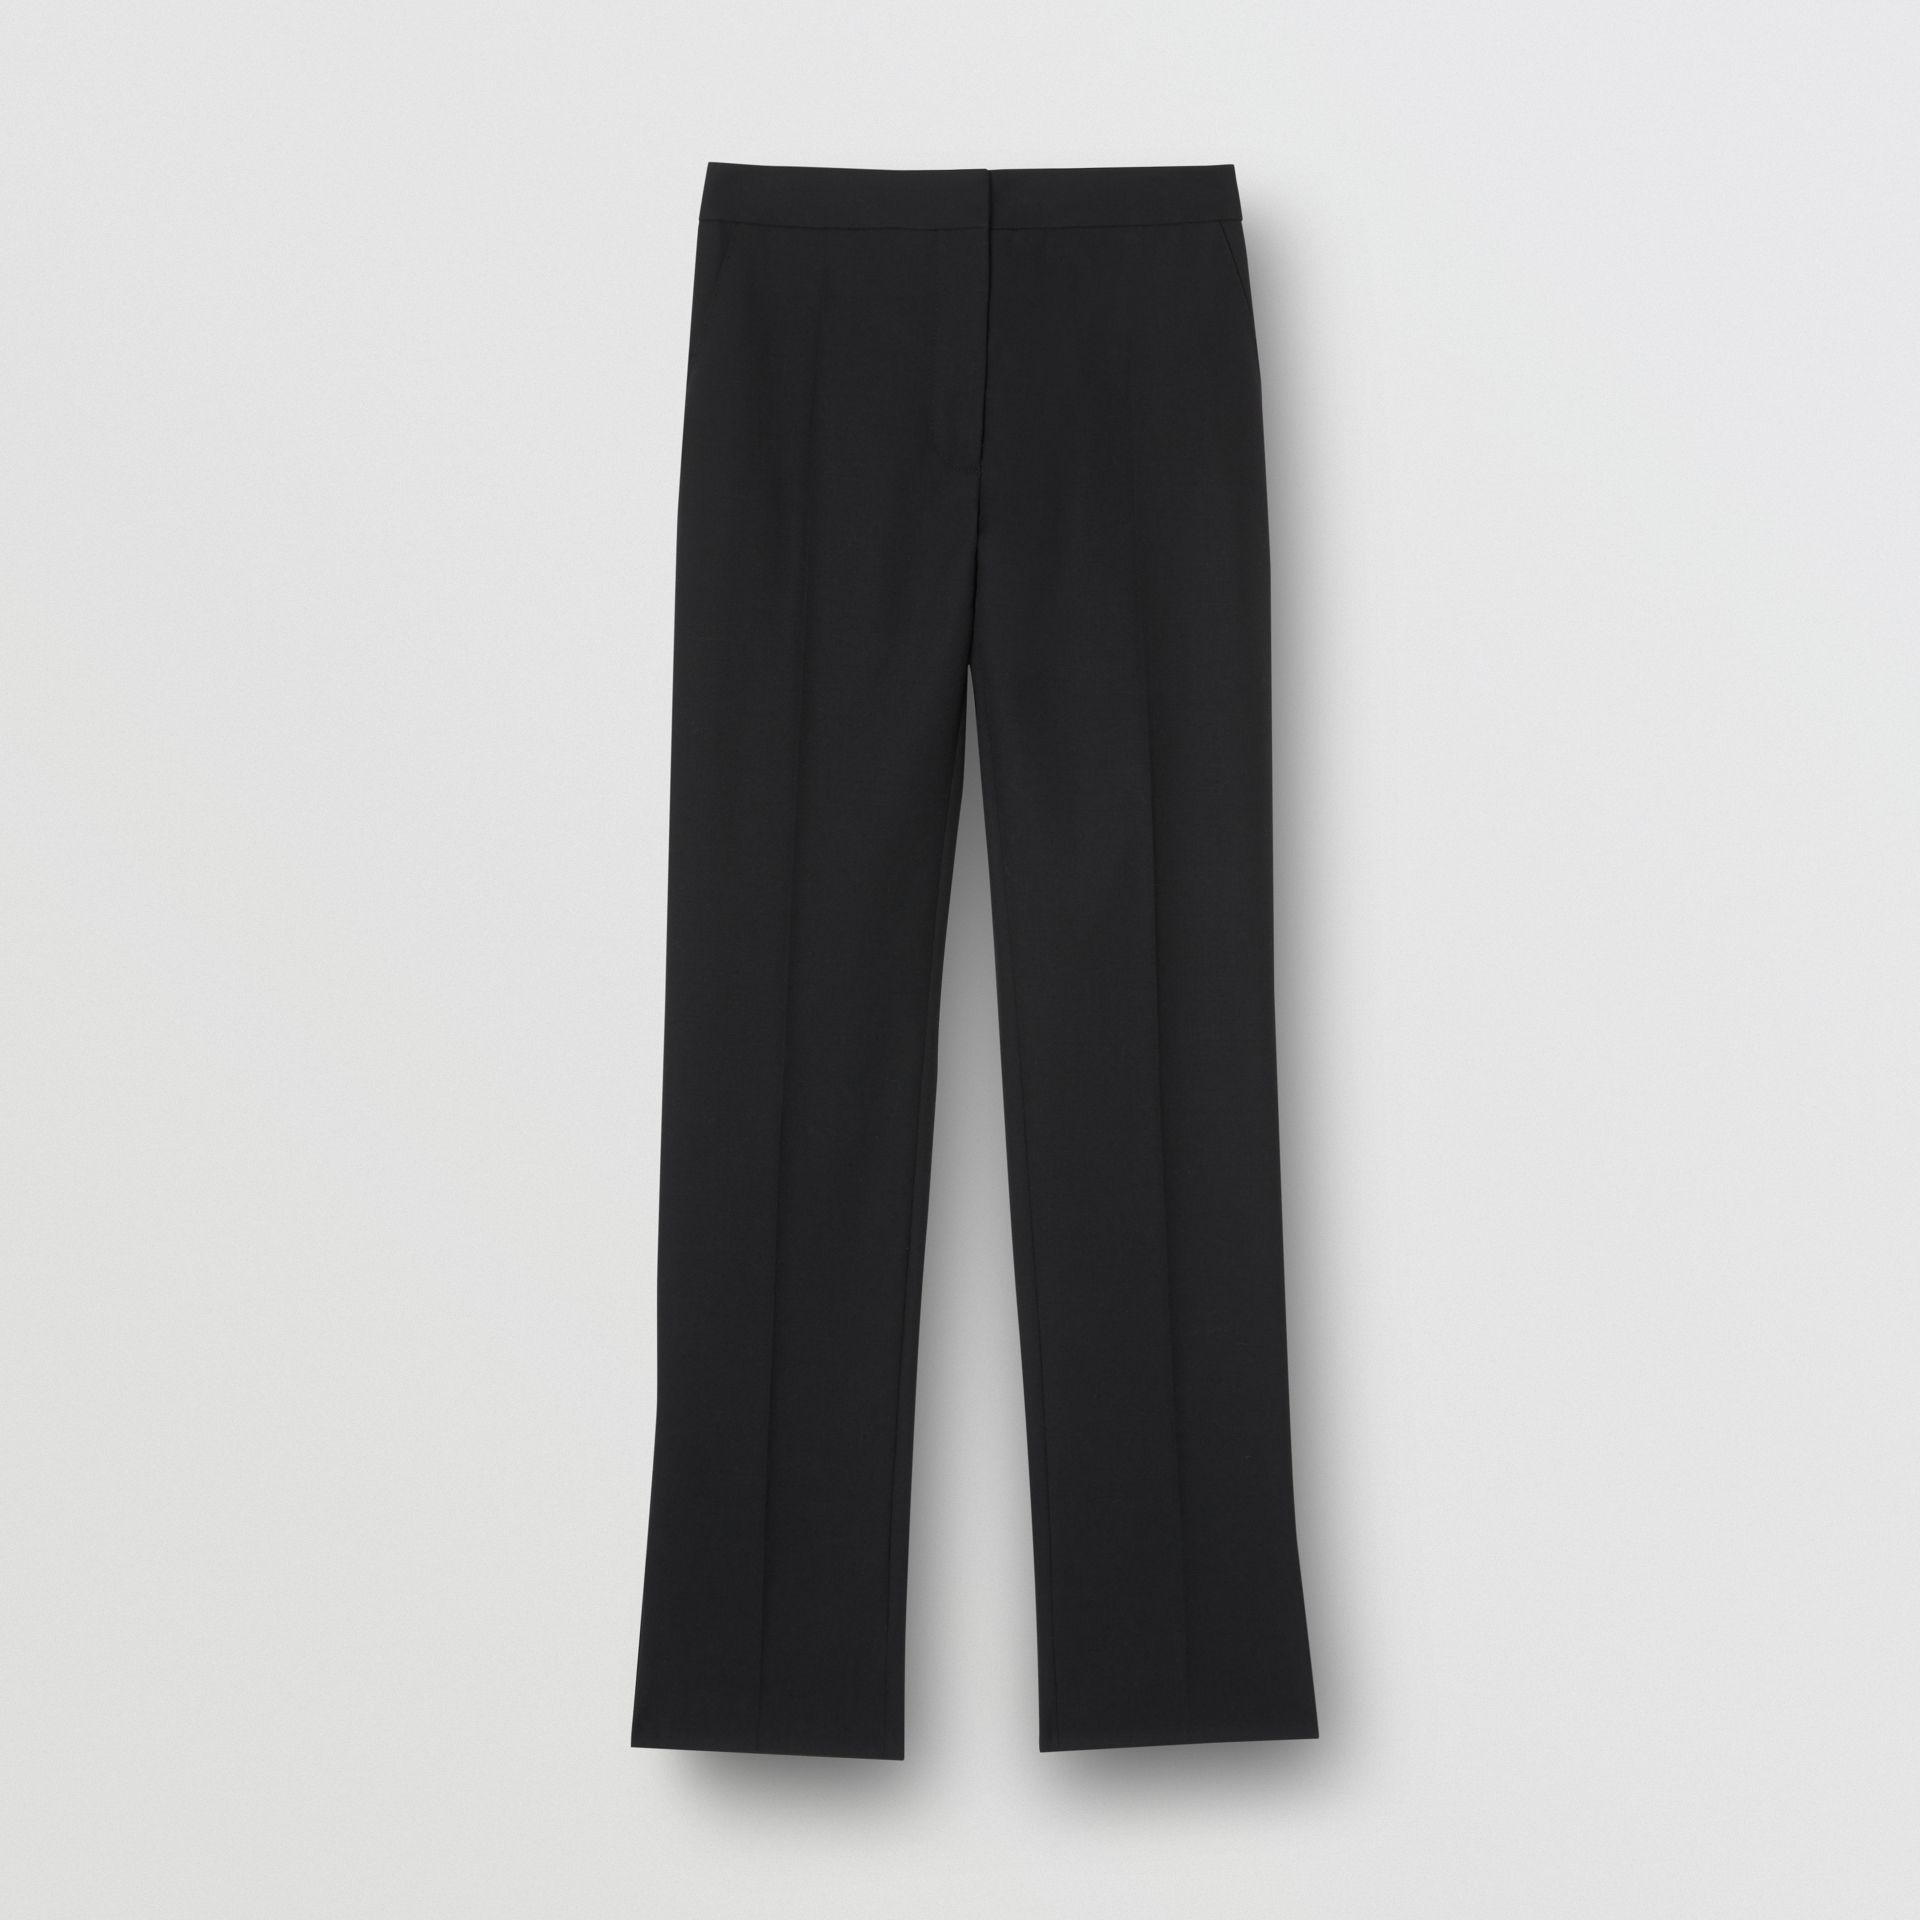 Satin Stripe Detail Wool Tailored Trousers in Black - Women | Burberry United Kingdom - gallery image 3